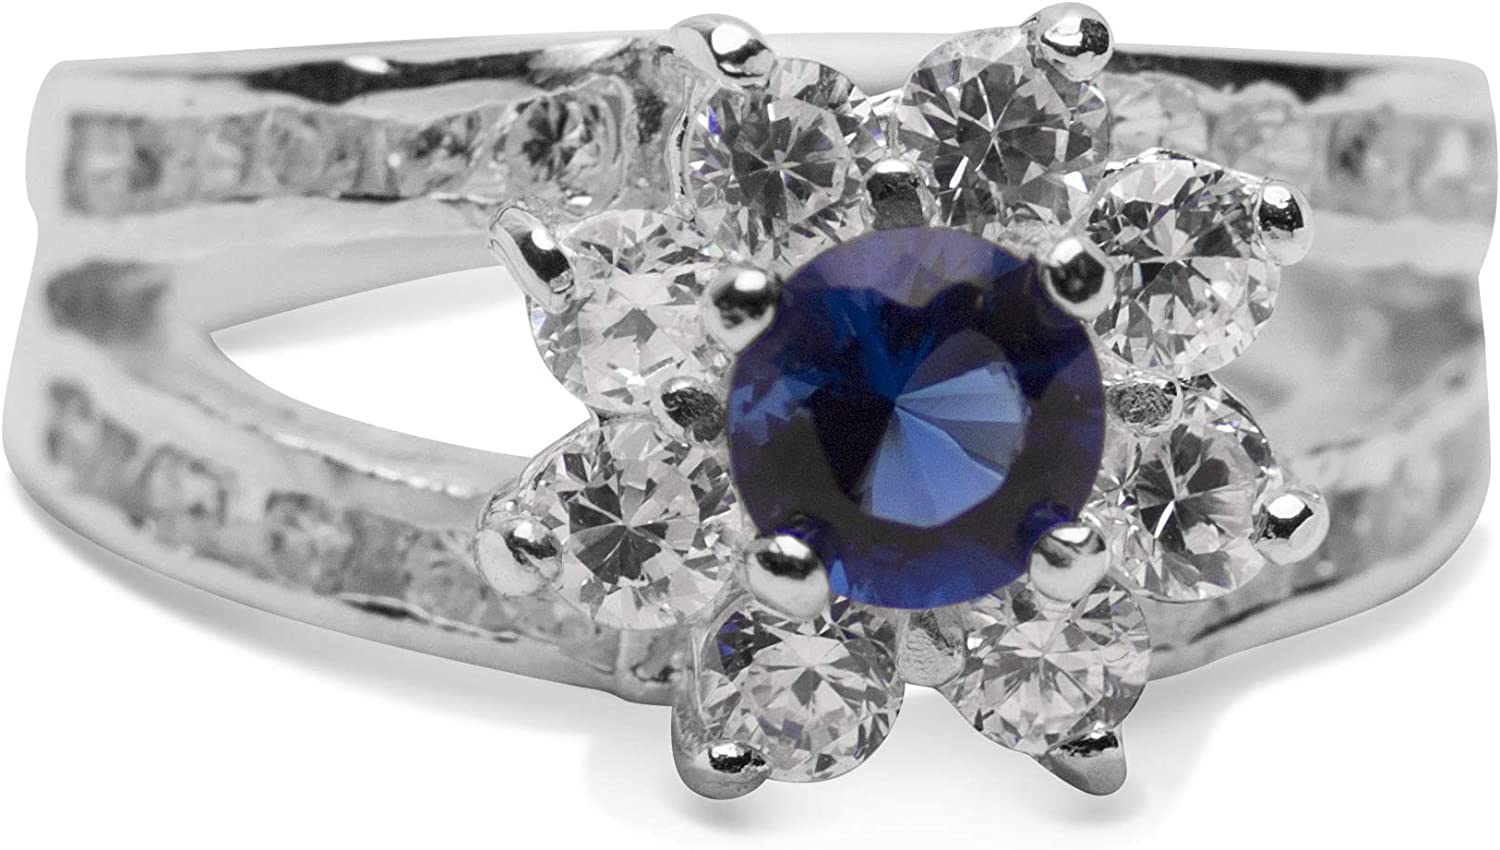 JewelryOnClick Blue Sapphire Pendant Charm 7 Carat Natural Oval Gemstone 92.5 Sterling Silver